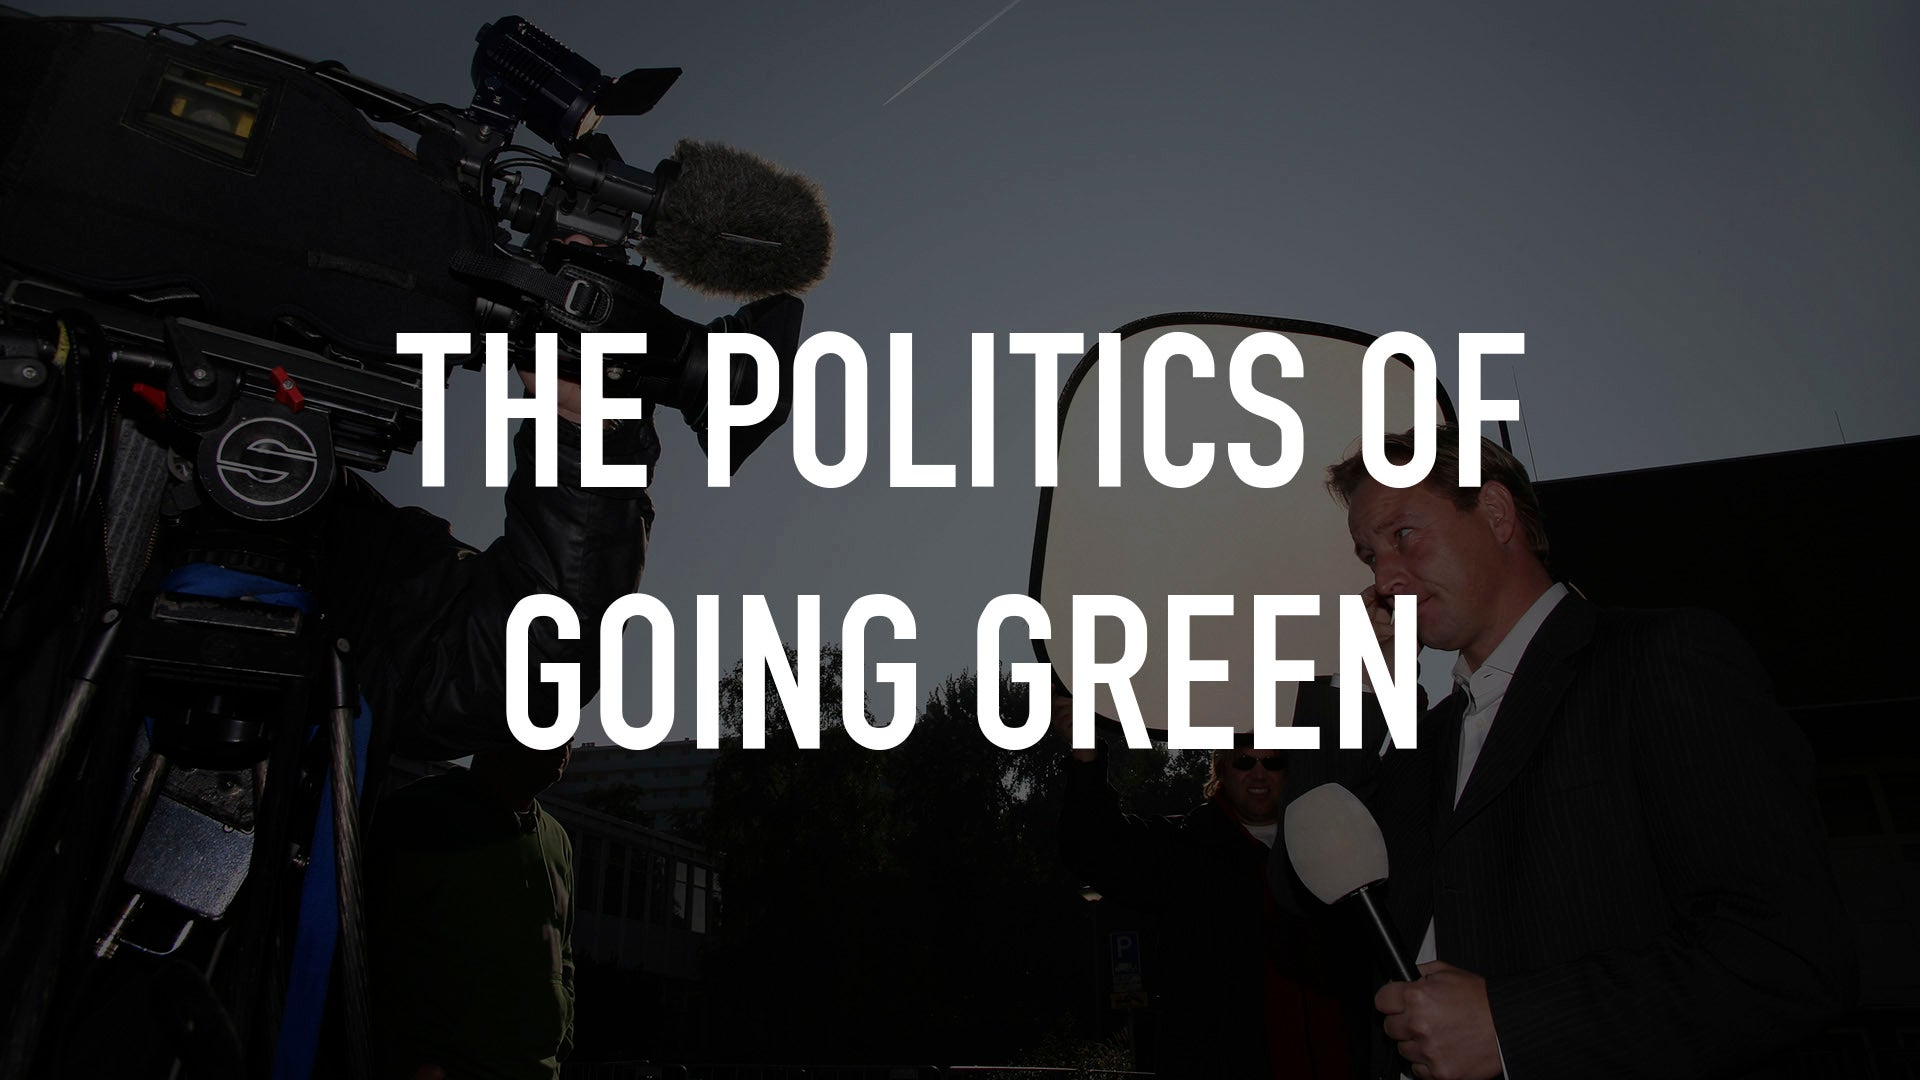 The Politics of Going Green